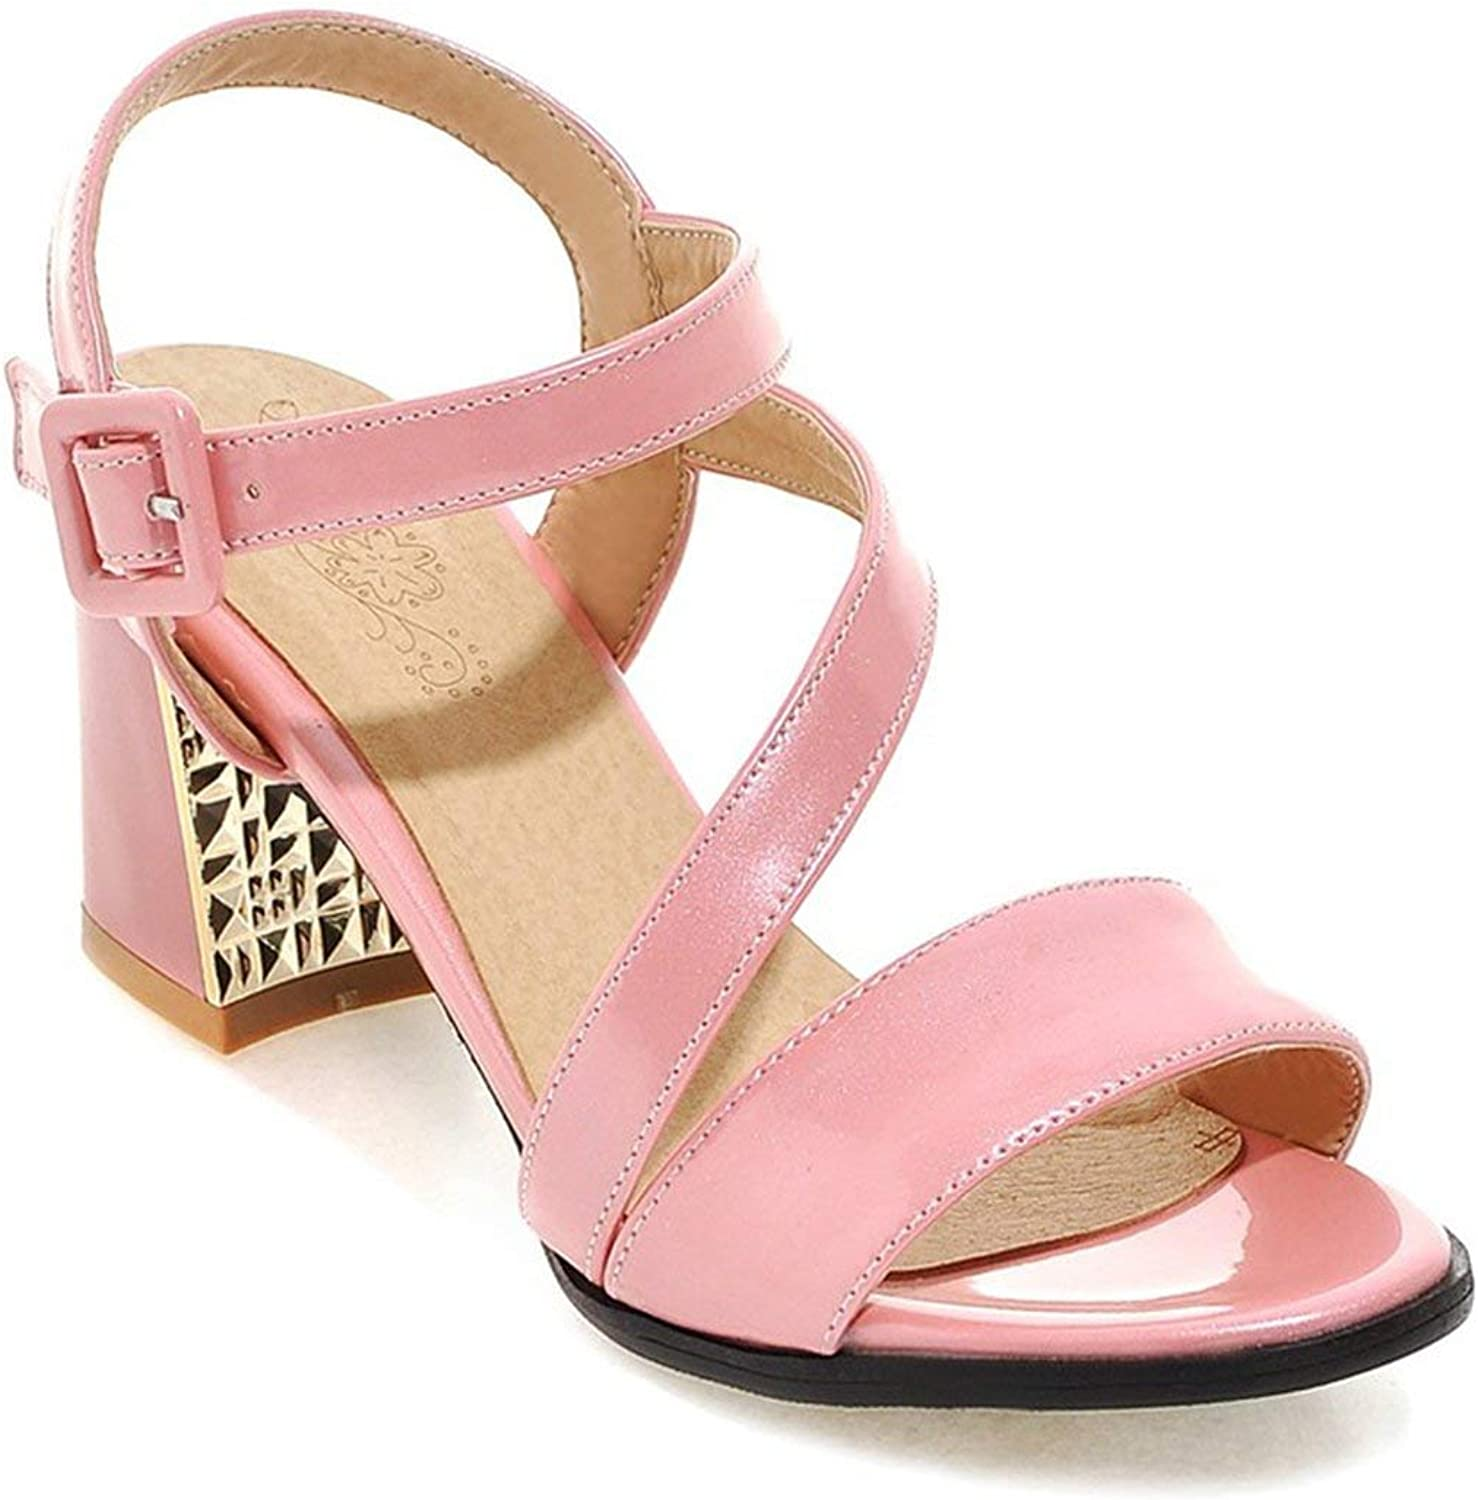 ALWAYS ME Ankle Strap Sweet Party shoes Thick high Heels Open Toe Buckle Solid color Women Sandals